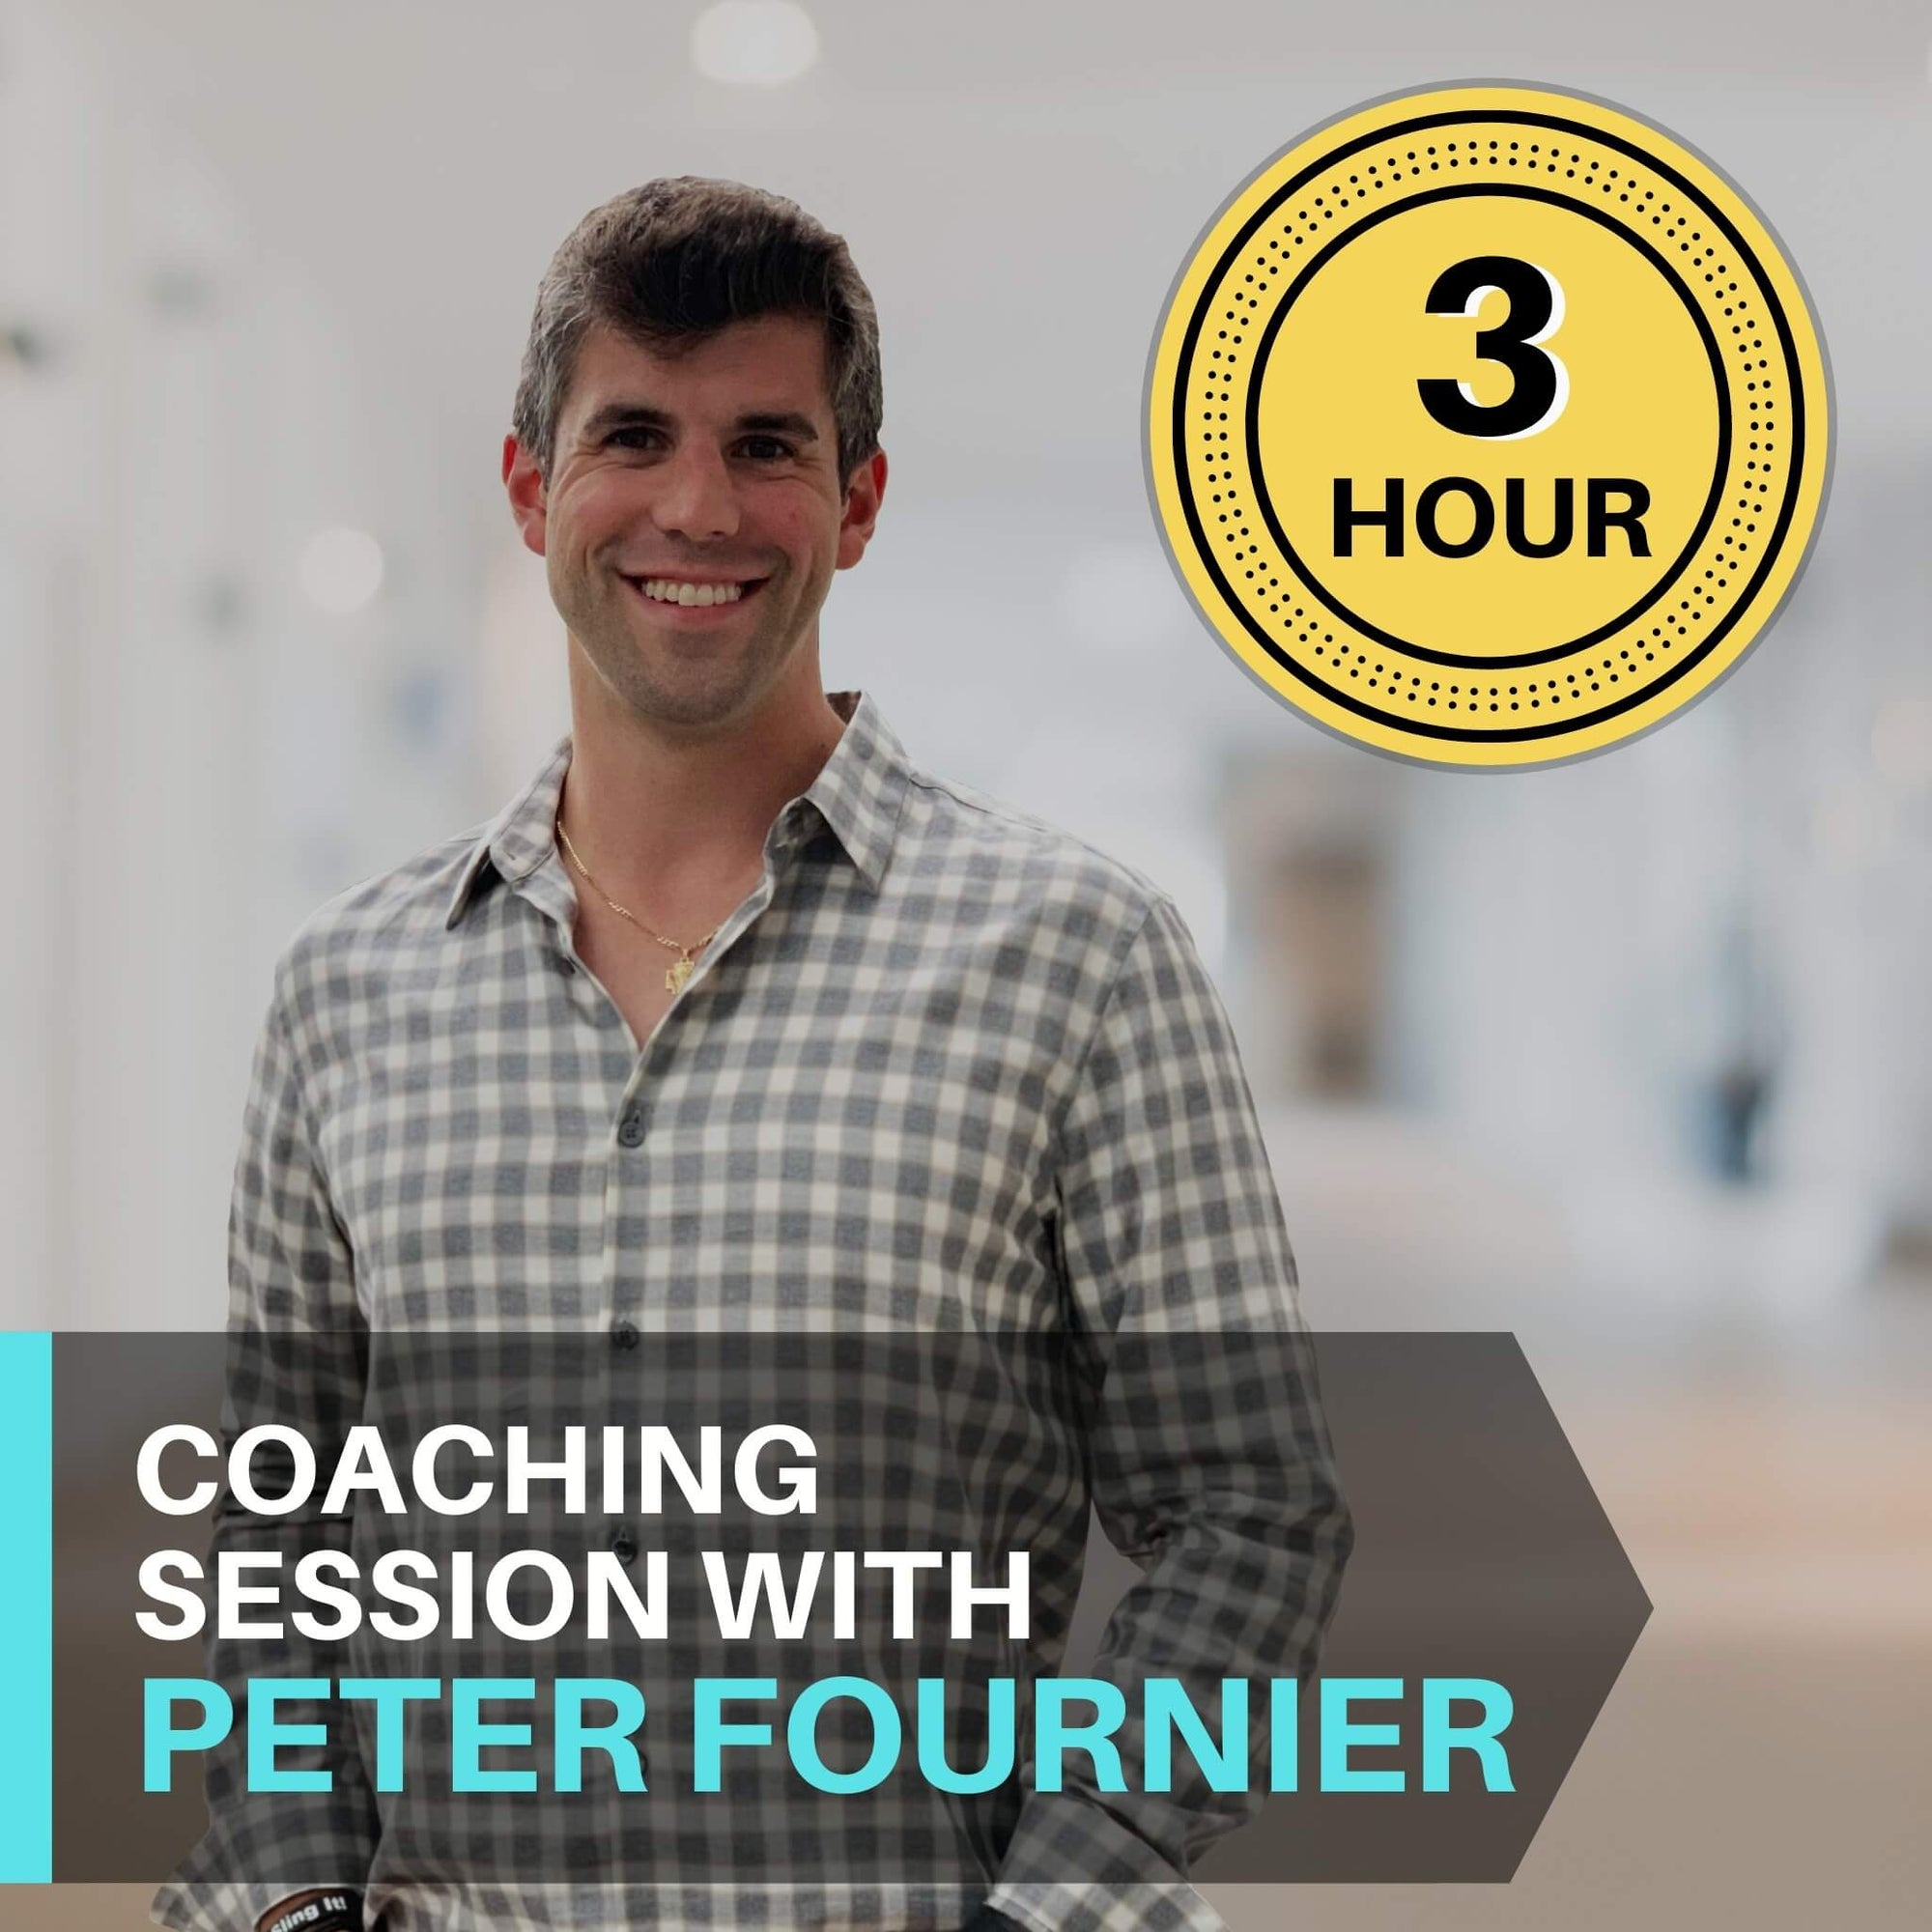 3 Hour Coaching Session With Peter Fournier